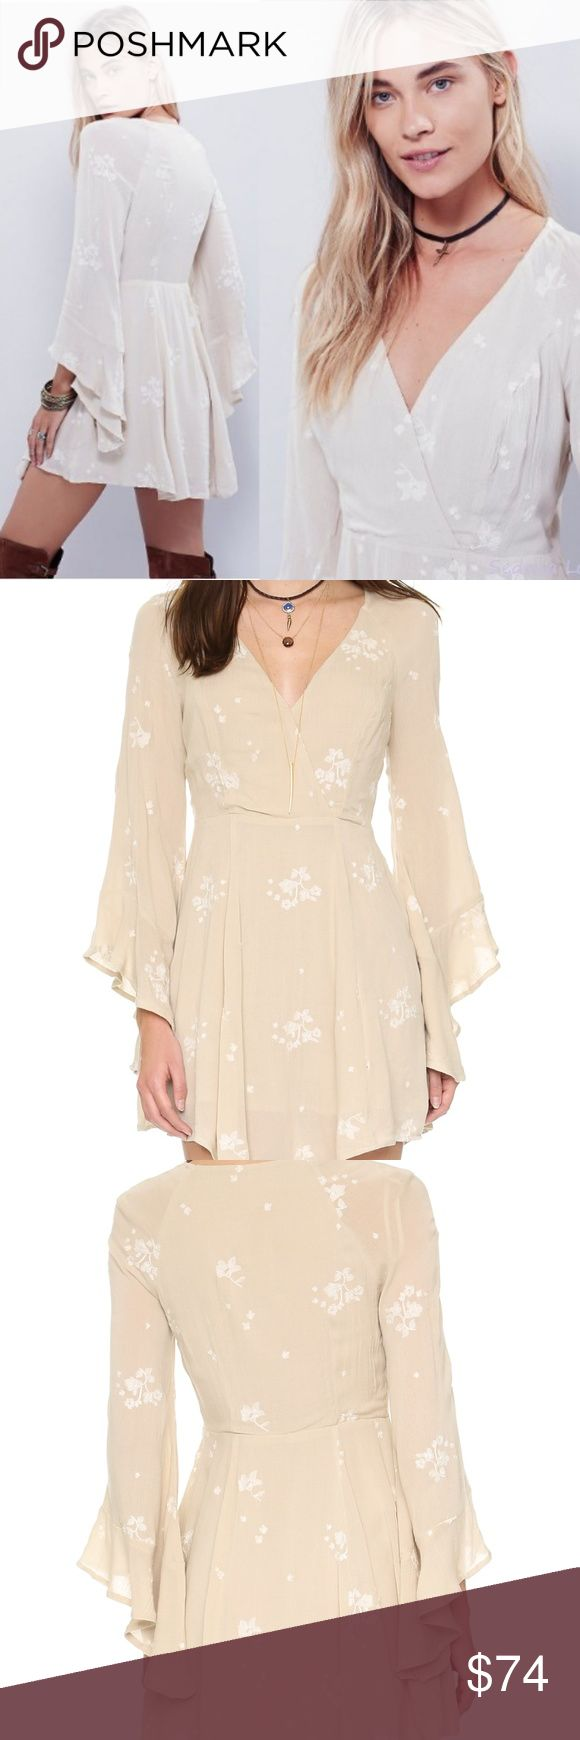 Free People Jasmine Embroidered Mini Dress Almond An airy Free People mini dress with a flared skirt. Ruffle cuffs and floral embroidery accentuate the romantic feel. Crossover V neckline. Long sleeves. Lined.  Fabric: Gauze. Shell: 100% rayon. Lining: 65% rayon/35% cotton. Hand wash or dry clean  Color Almond Free People Dresses Mini